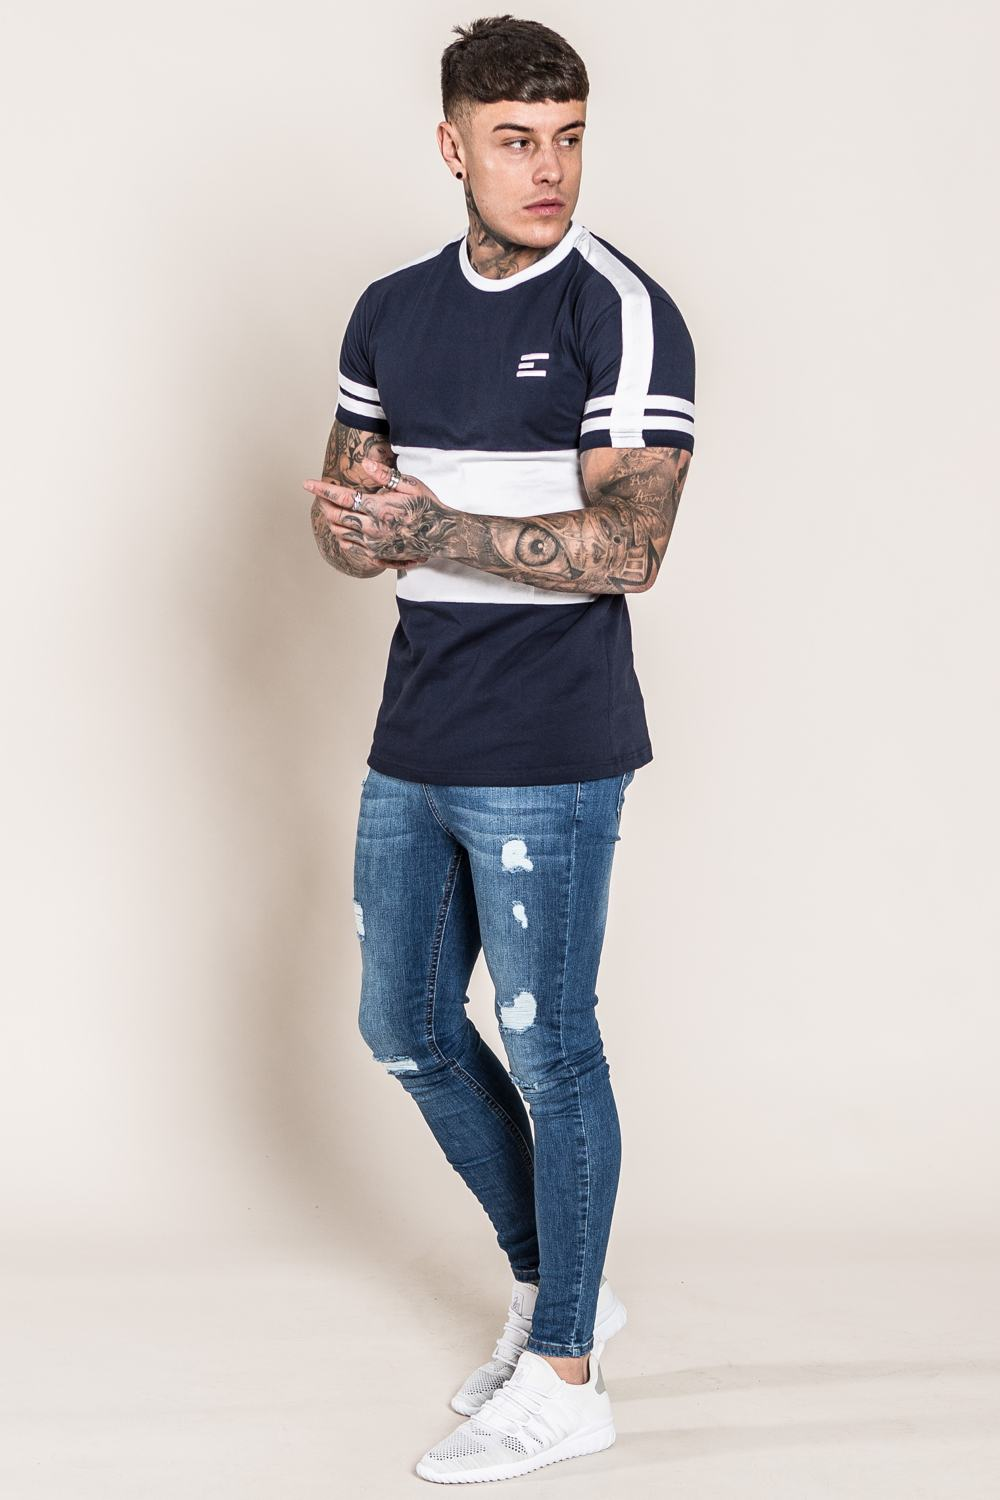 Emulate Huxley T-Shirt - Navy/White - 1